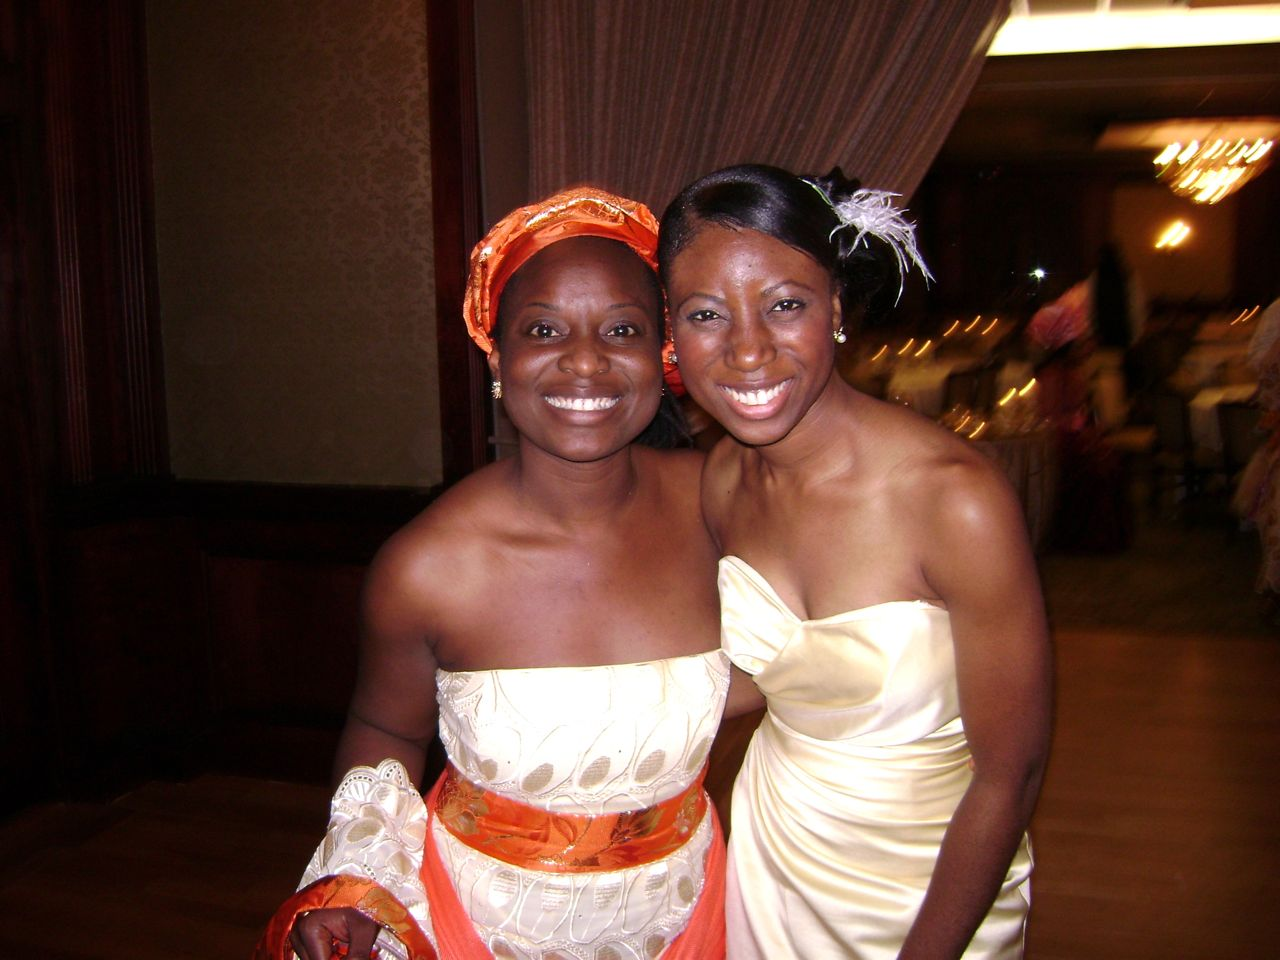 Folake and Mashood Wedding 2009 - 11